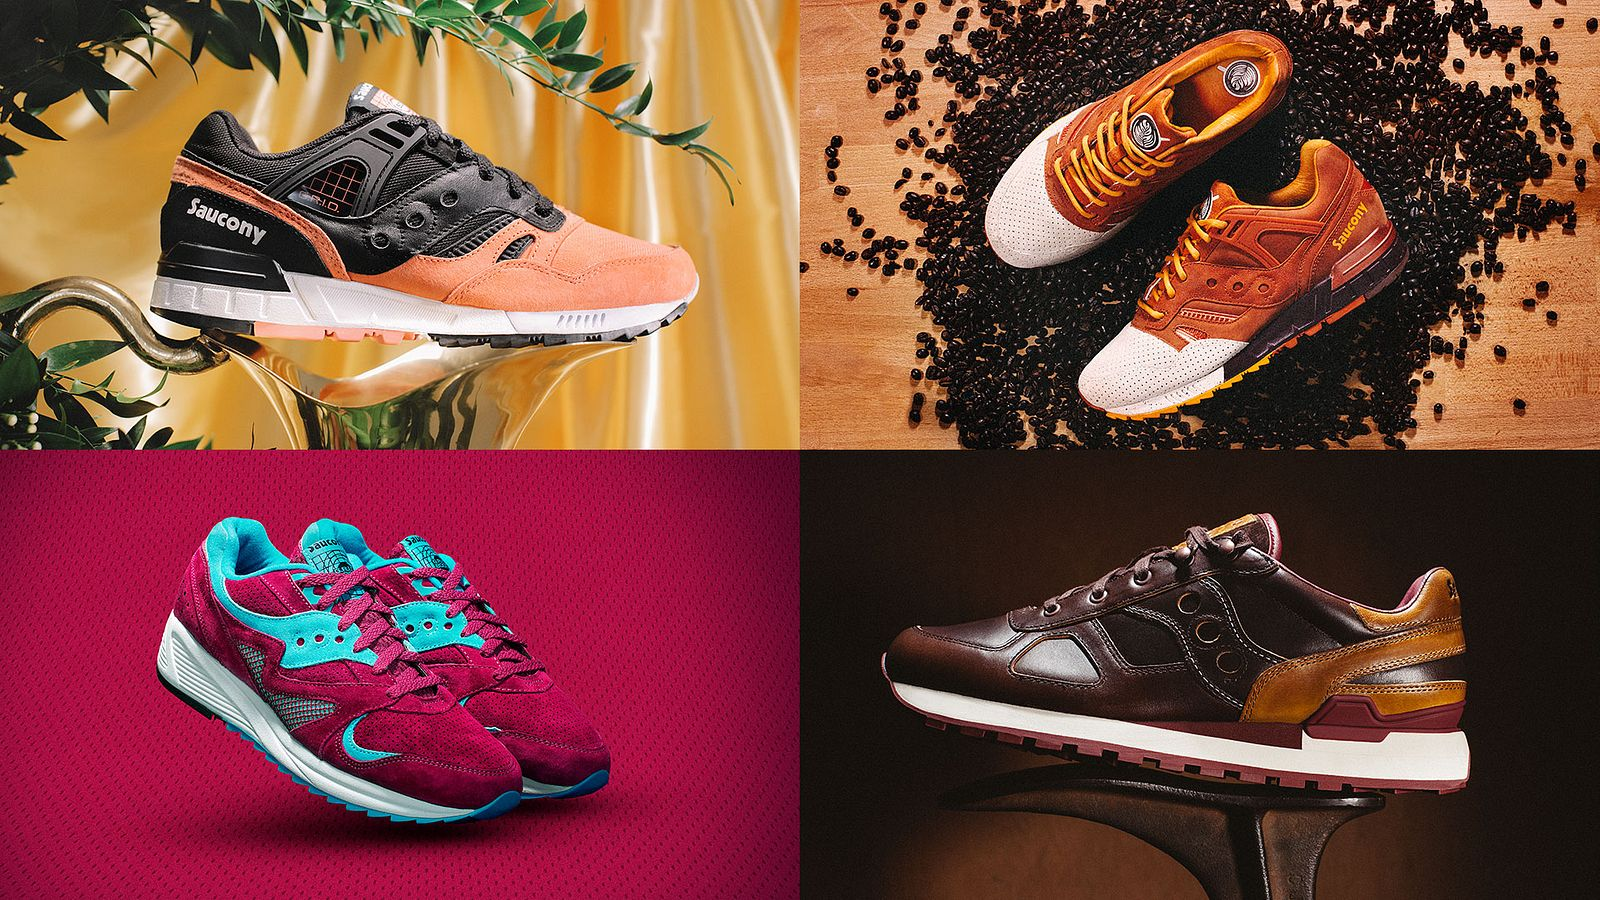 Shoe mosaic – Jersey, Derby, Pumpkin Spice for Saucony Originals, styled by Someoddpilot